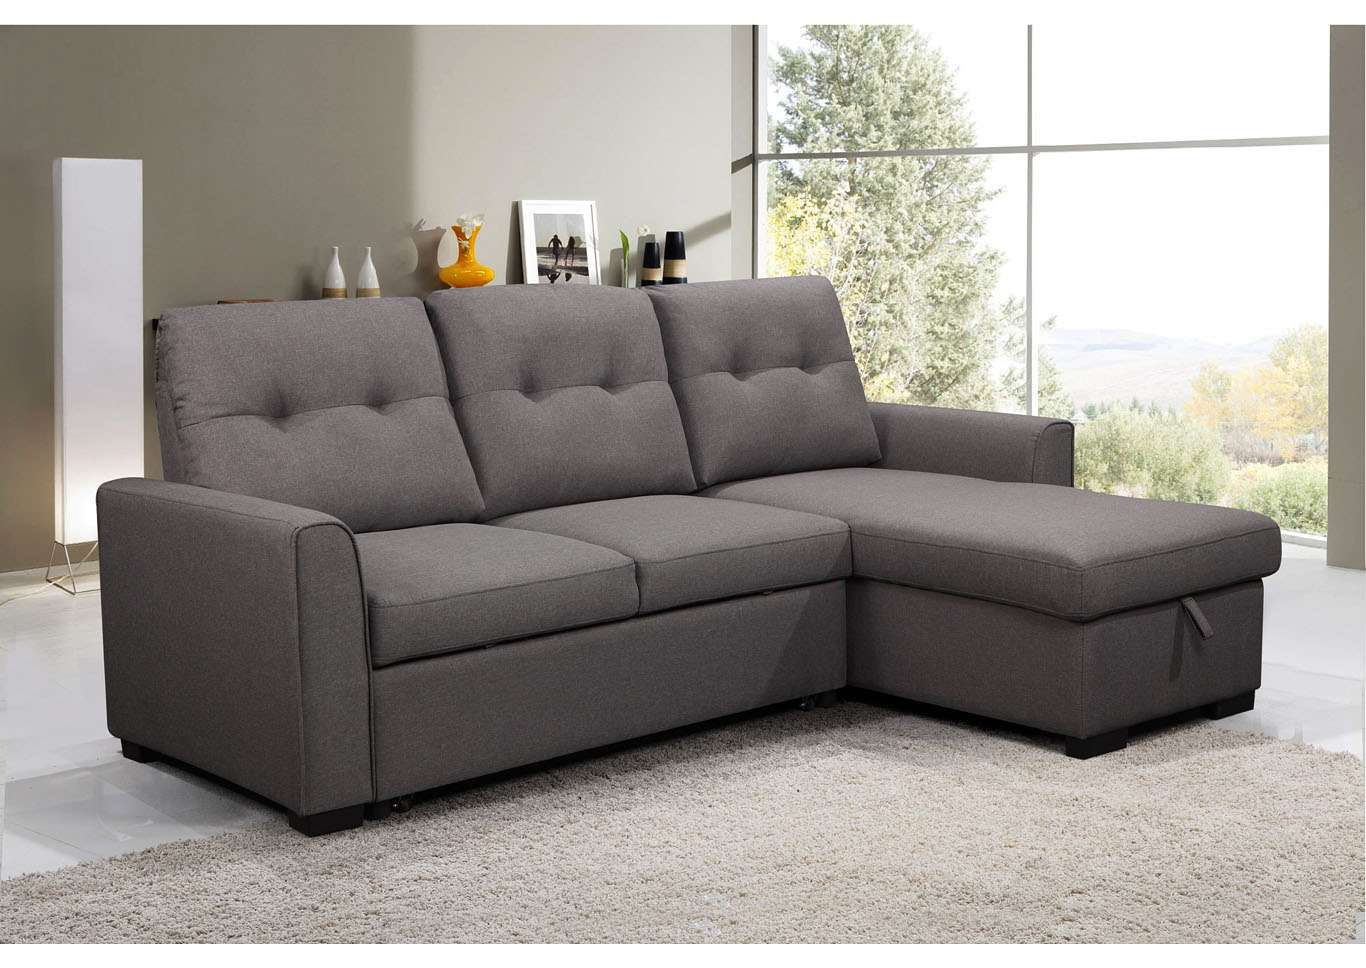 Florenzo Media Sofa Chaise with Storage and Pull Out / Pop Up Ottoman,Instore